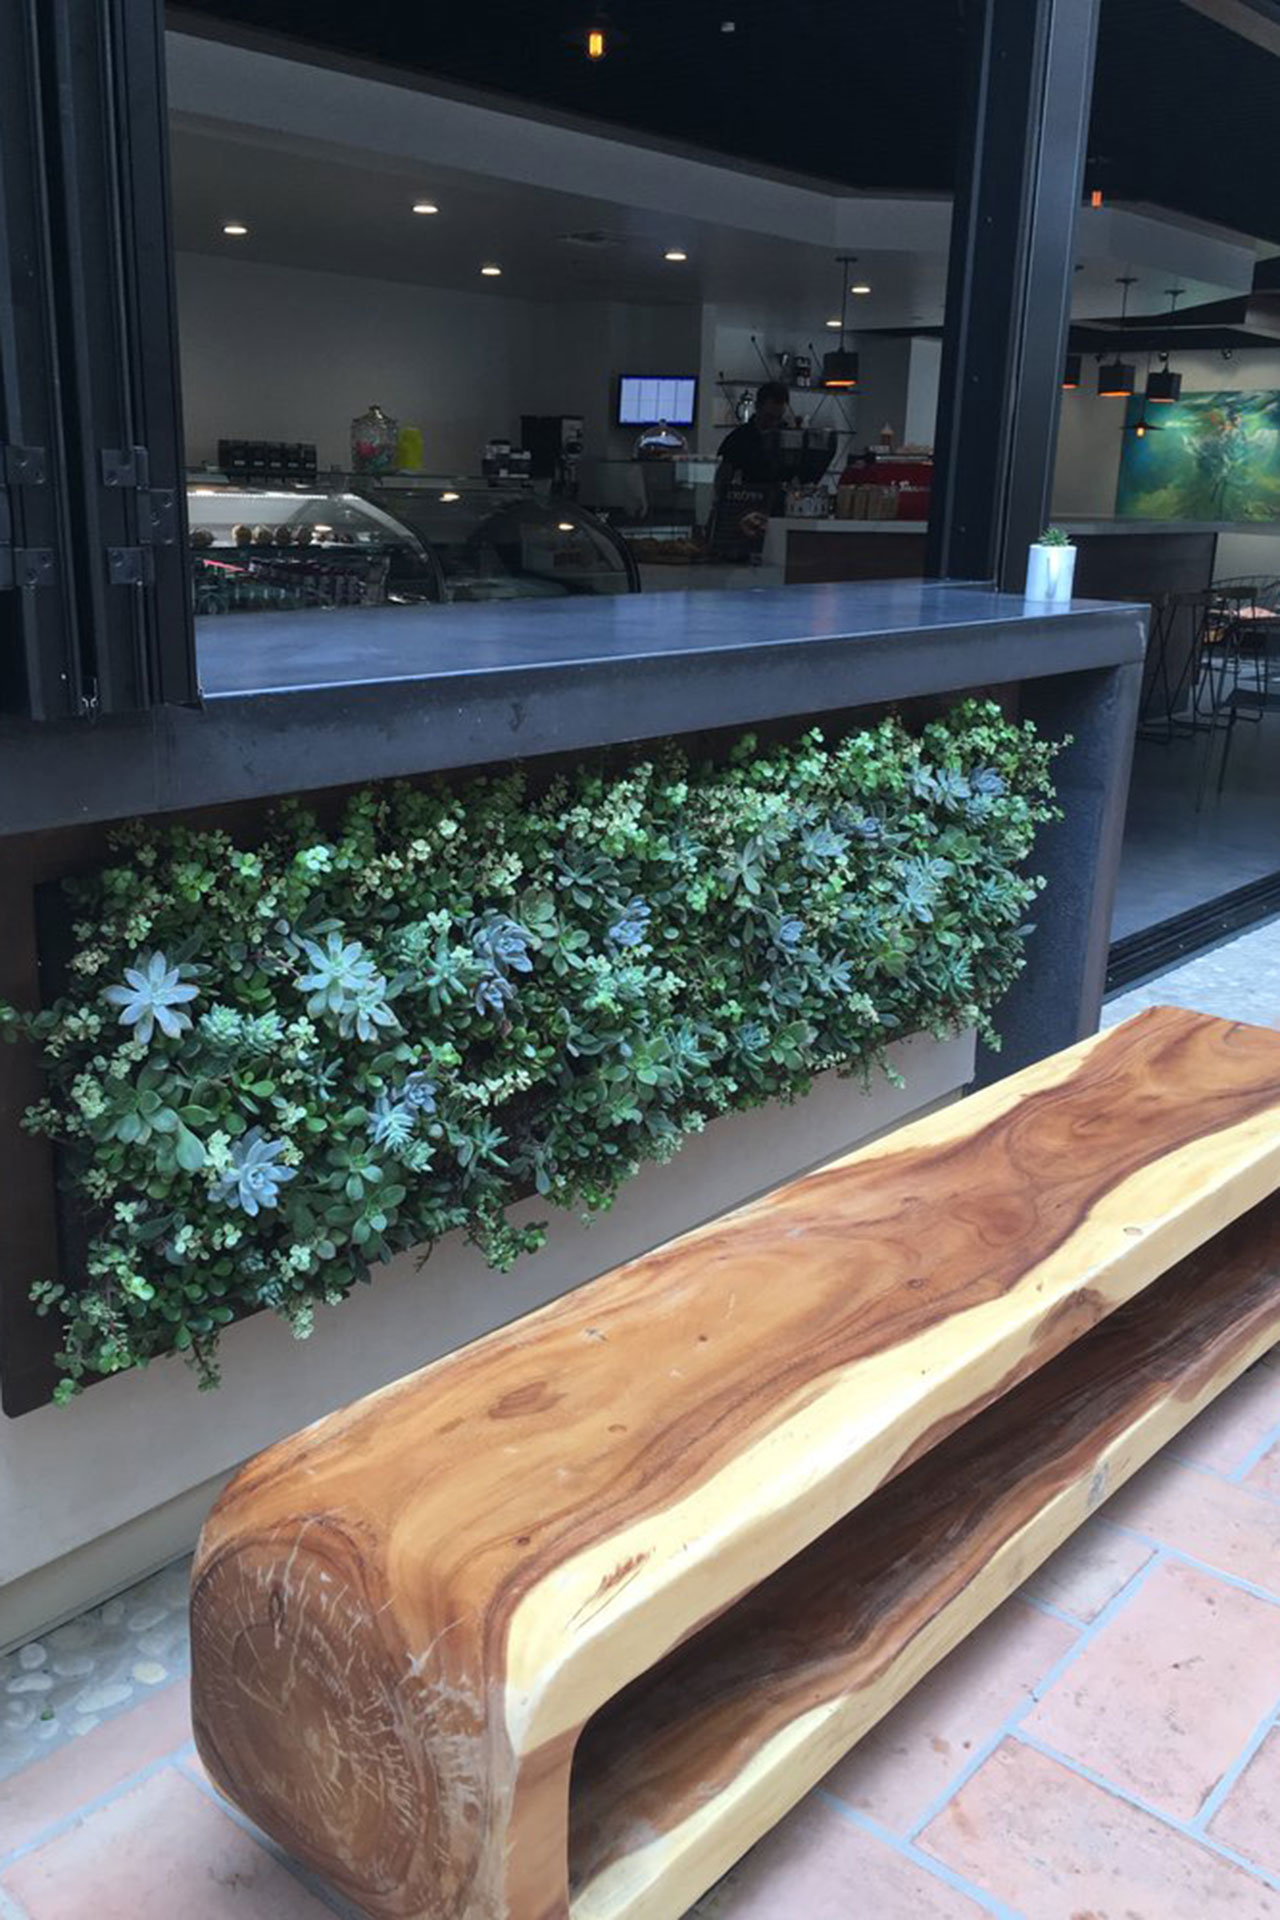 Elixir Espresso Bar – La Jolla Village, California